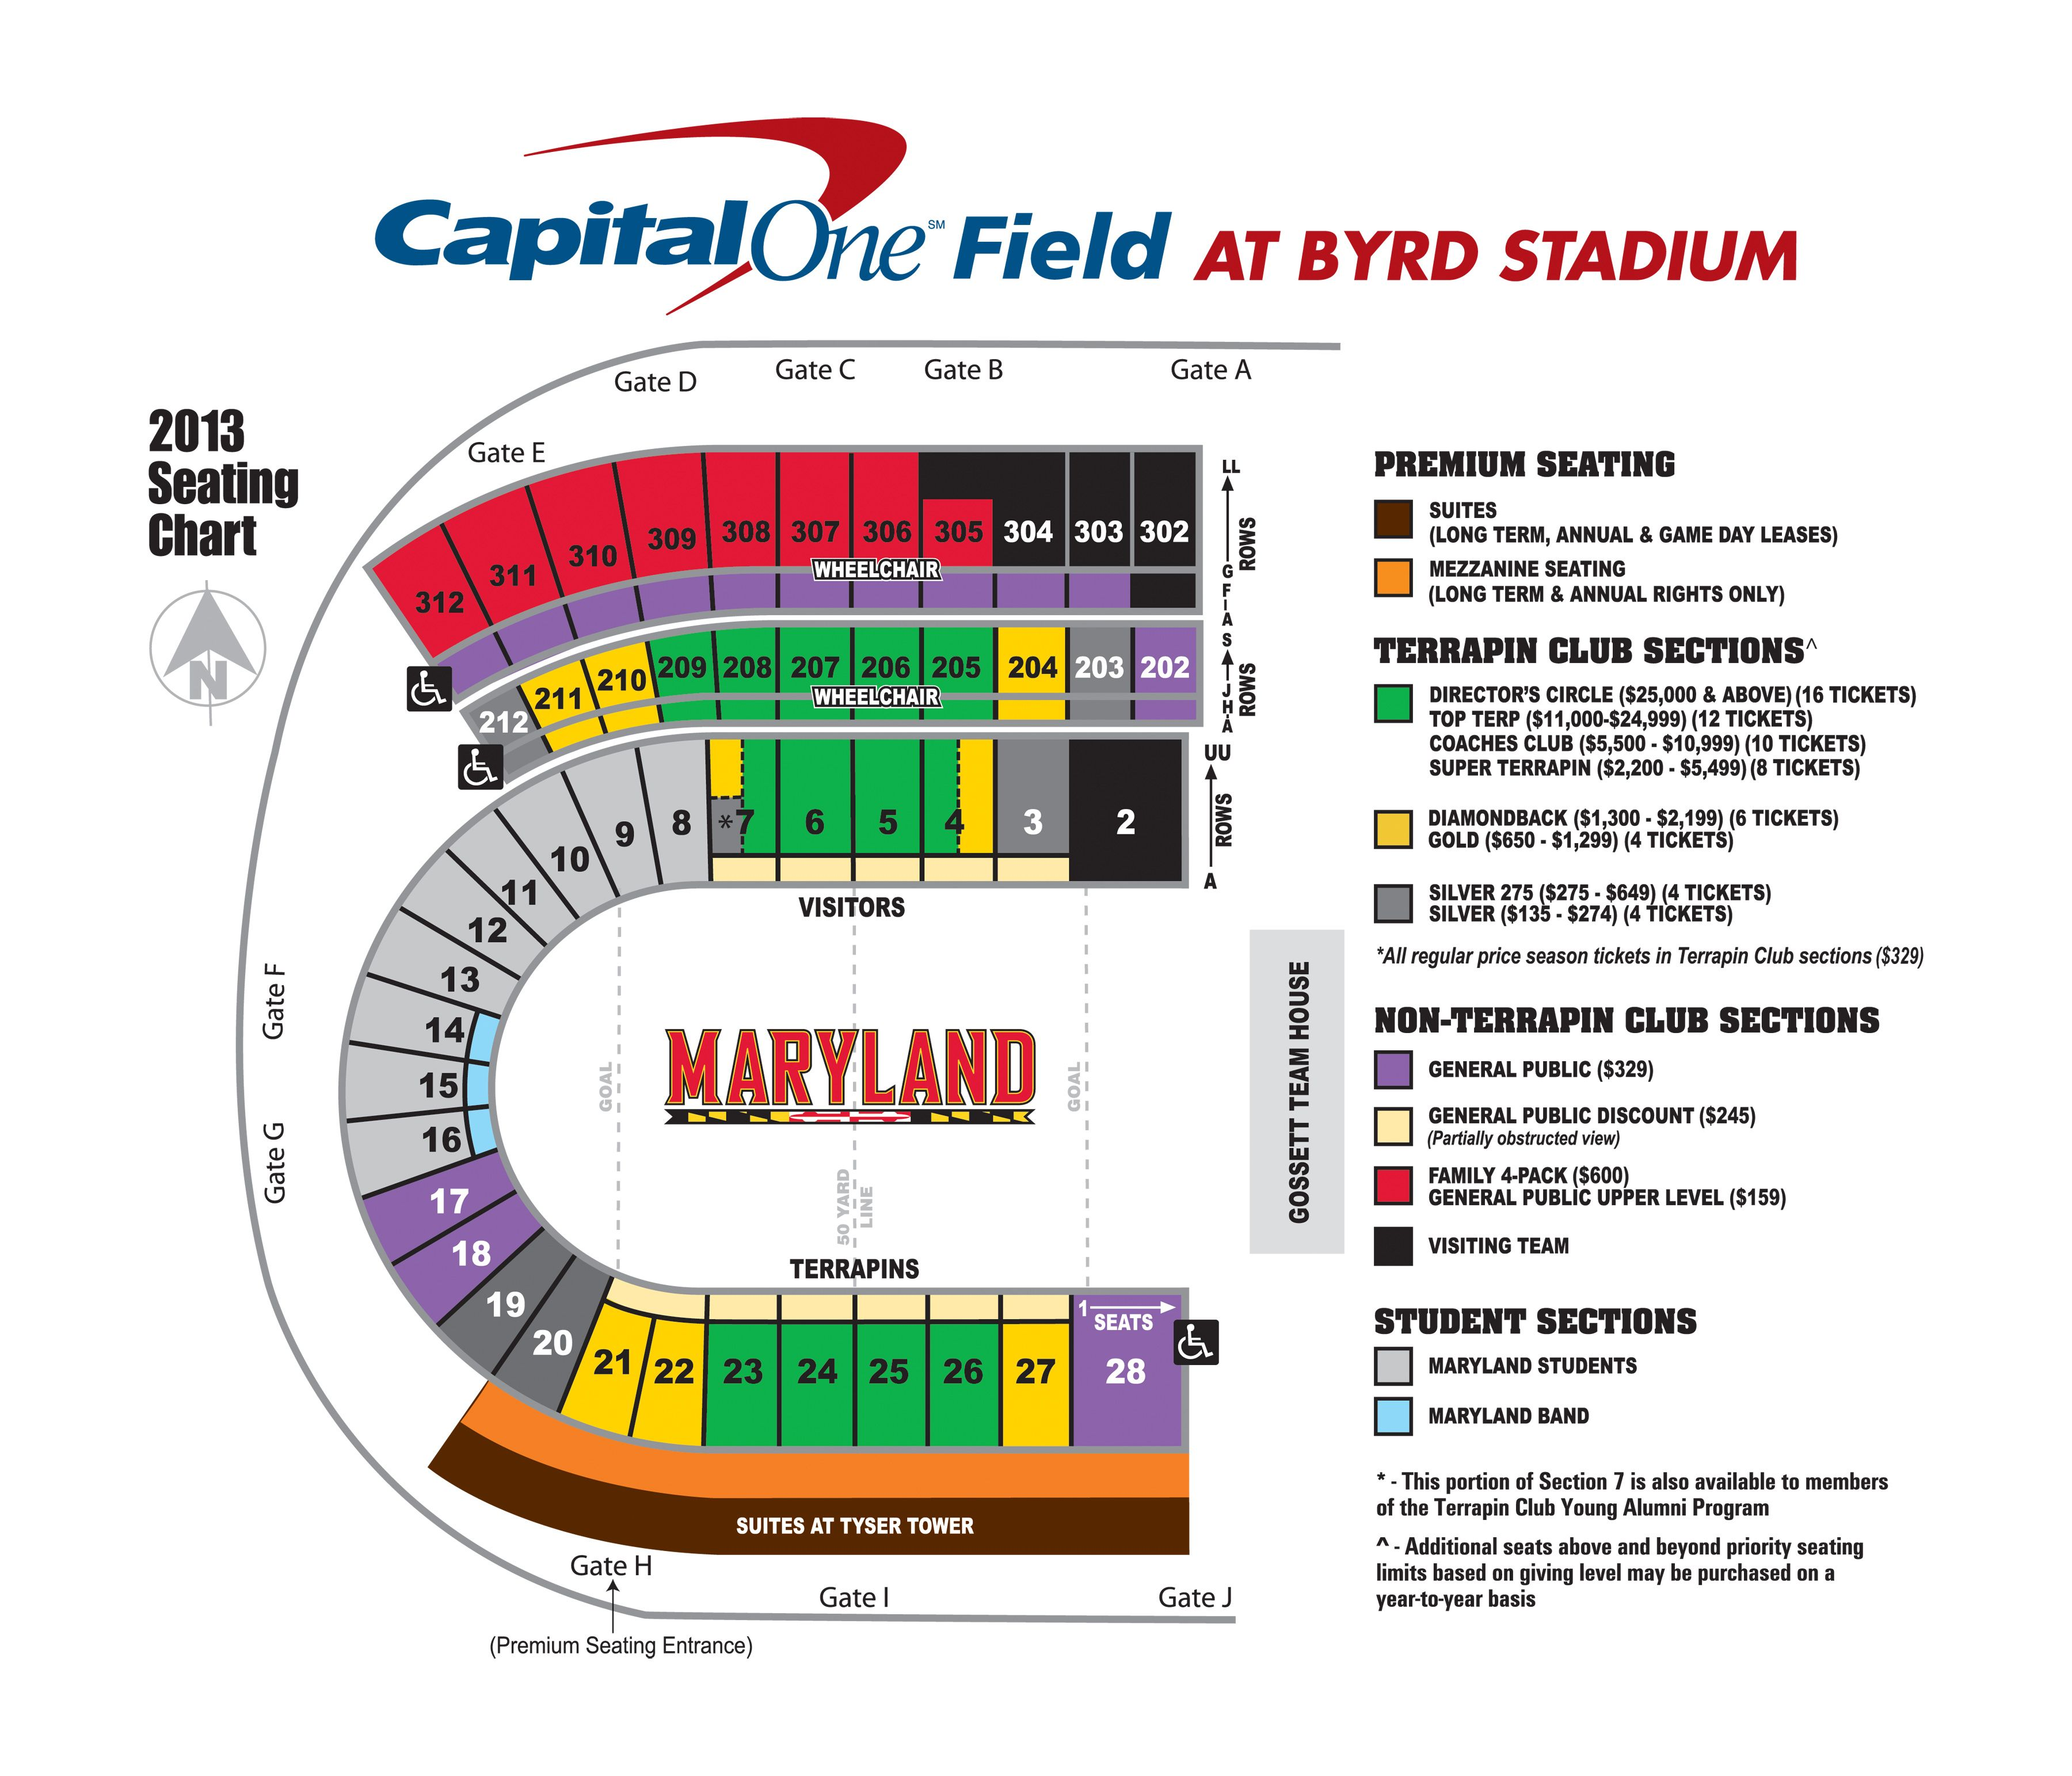 virginia tech football stadium seating chart Google Search Stadiums I have sat in Pinterest